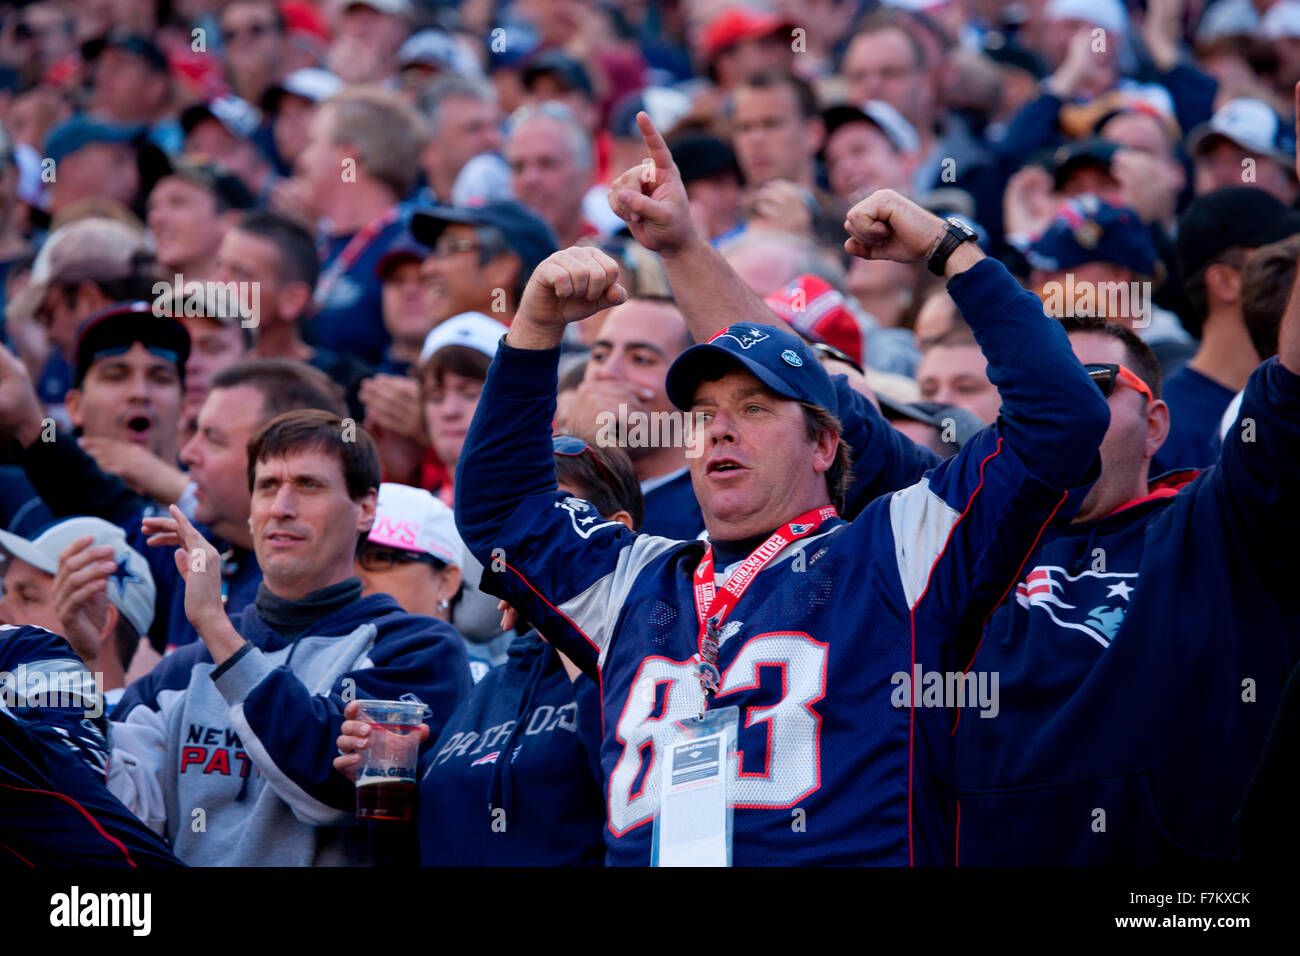 New England Patriots NFL Football fans at Gillette Stadium ...